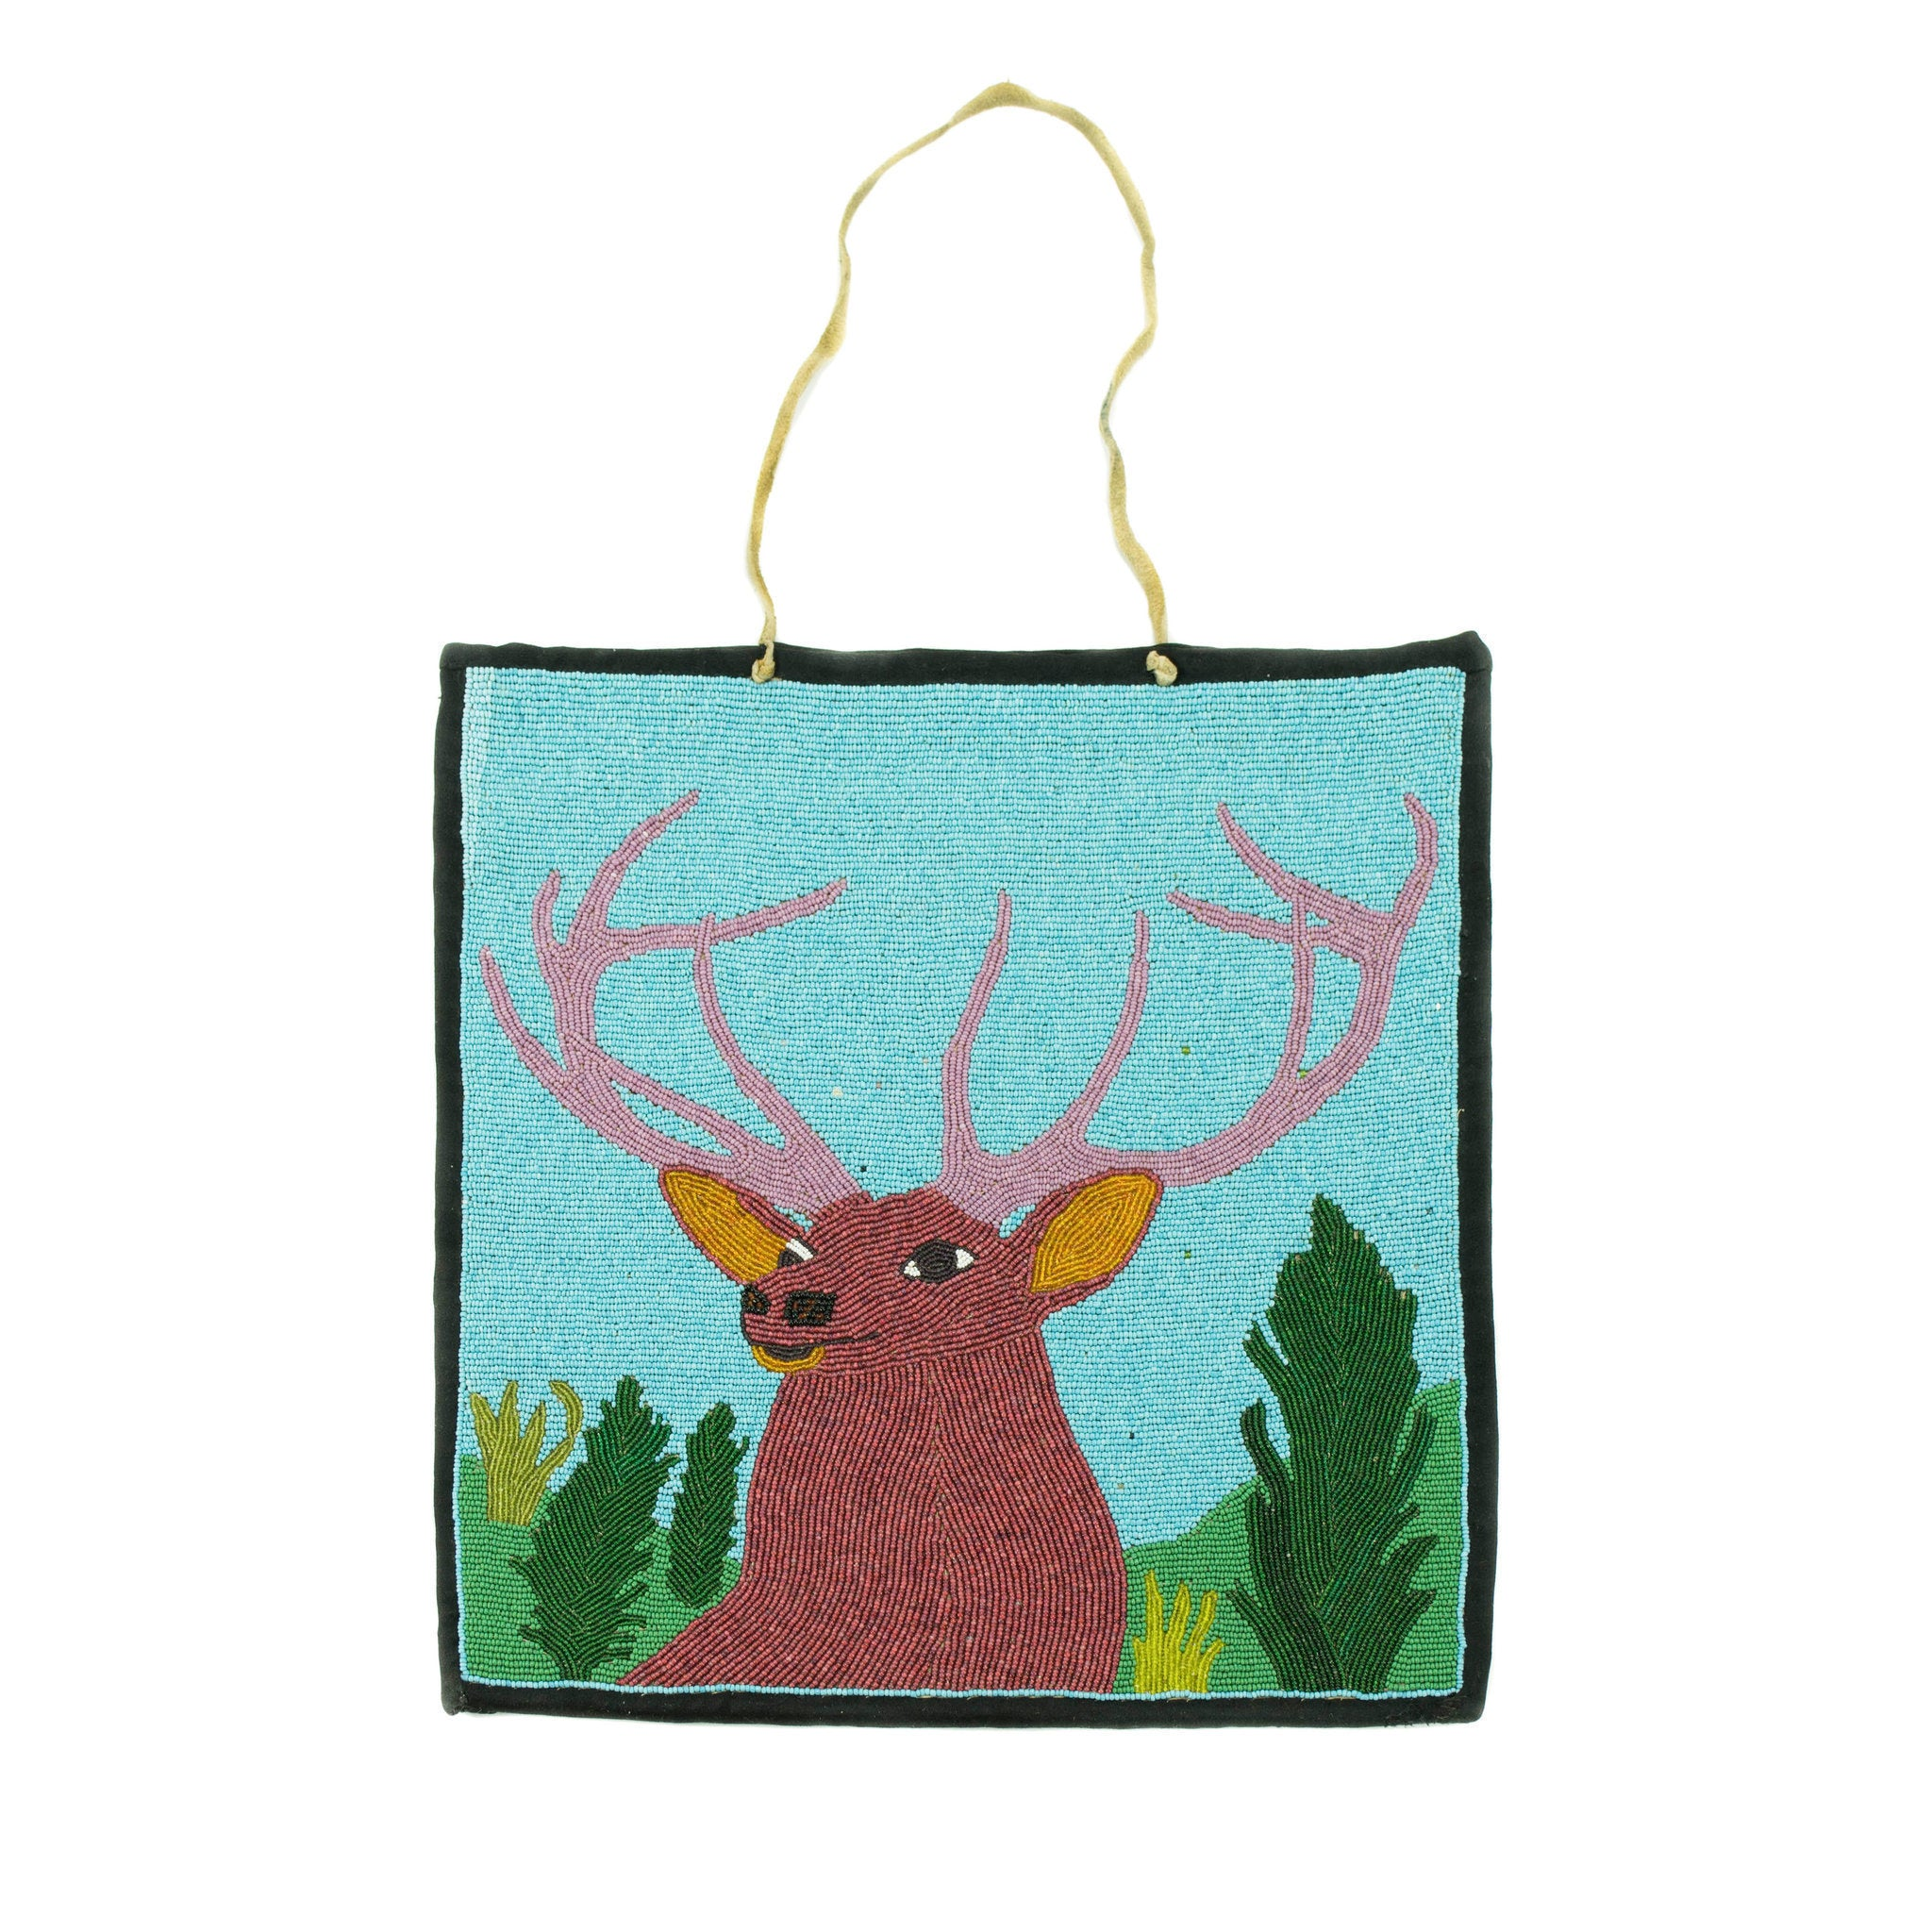 With a Stag beadwork, flatbag, nez perce, pictorial